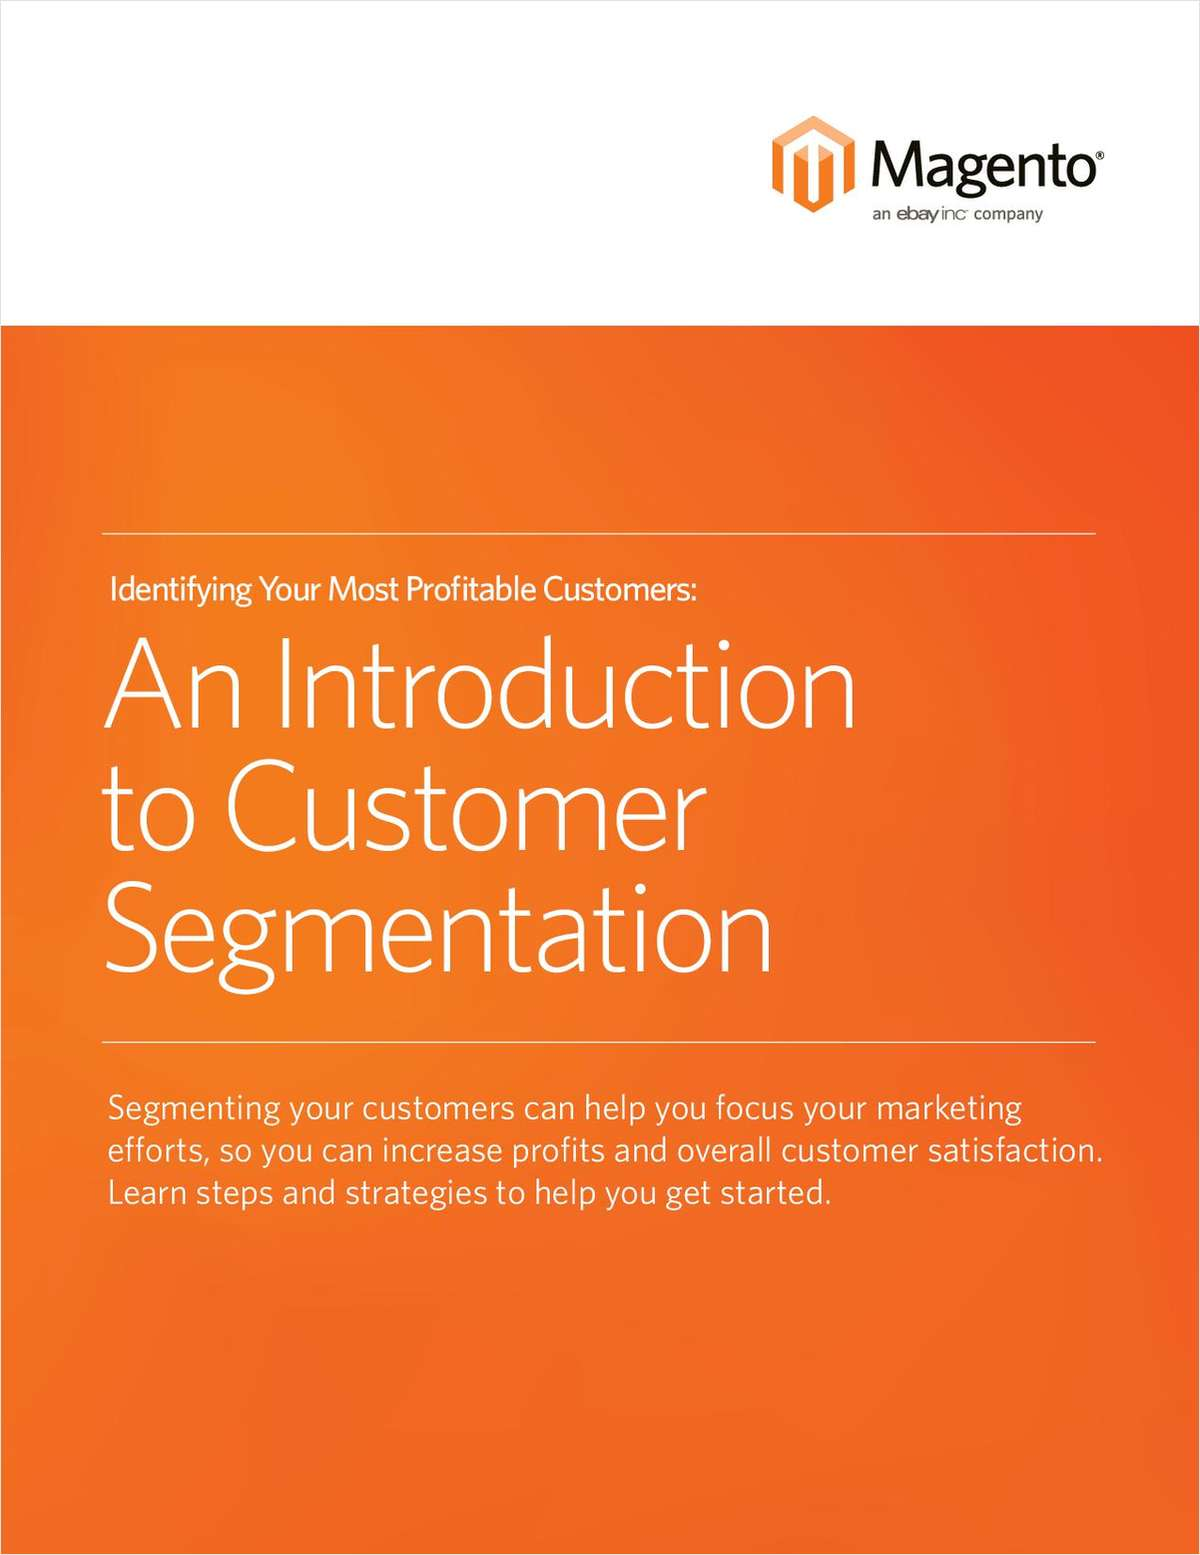 Learn How to Identify Your Most Profitable Customers